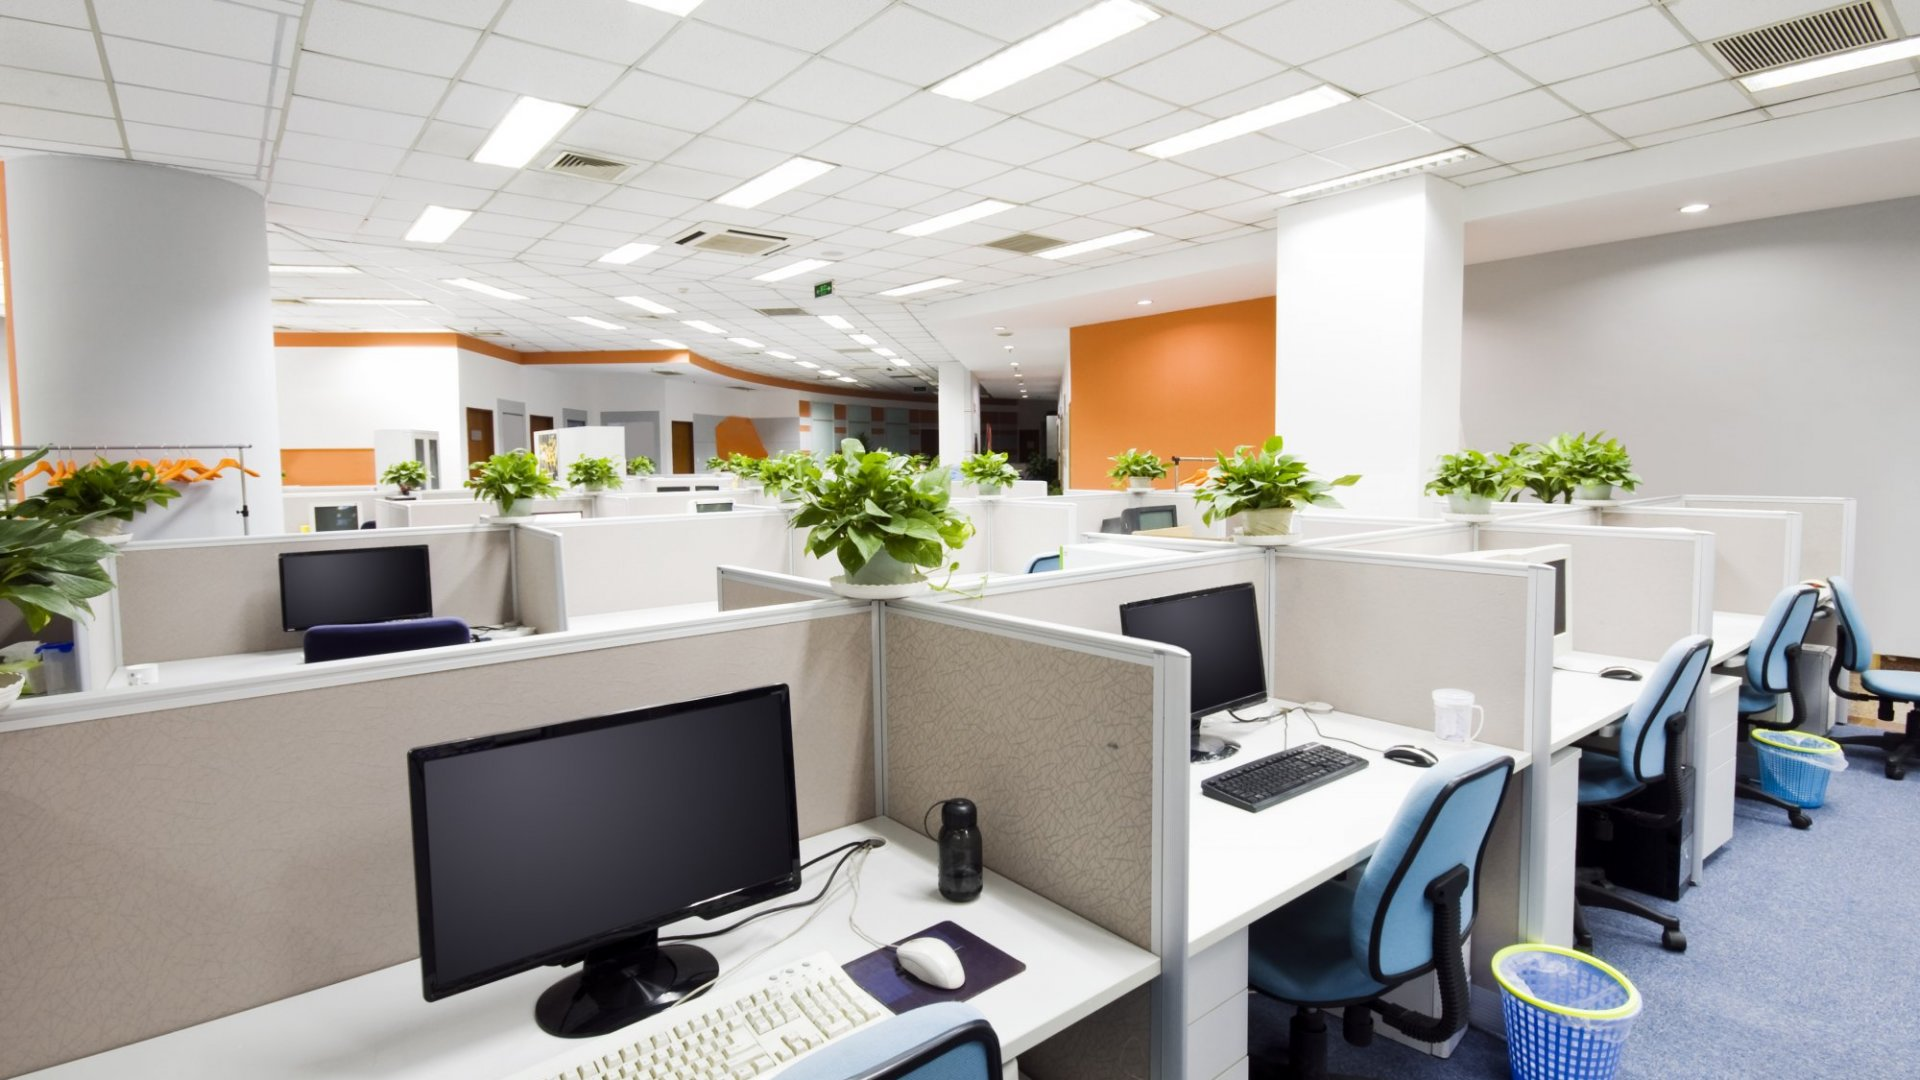 Plants create an oasis of calm in a stressful office environment.